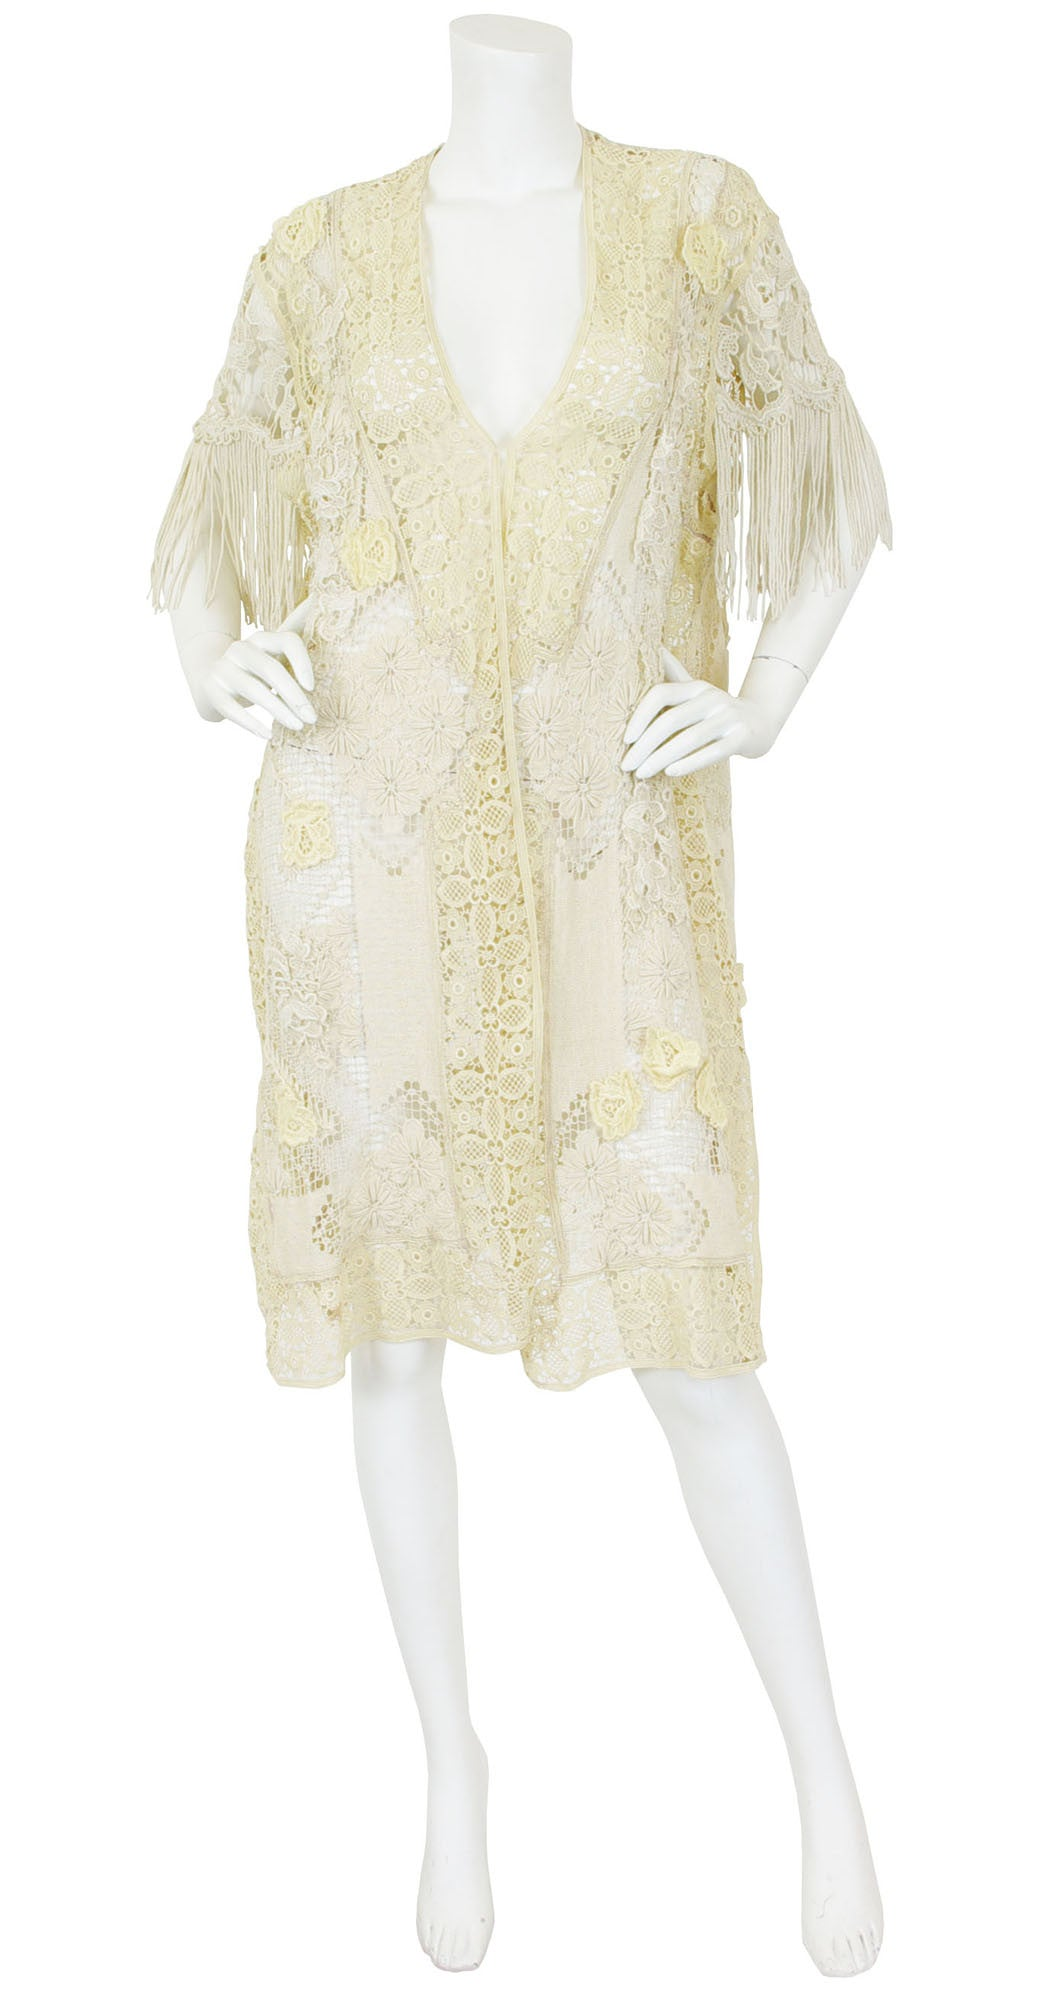 1910s Edwardian Cream Lace Fringe Tassel Jacket